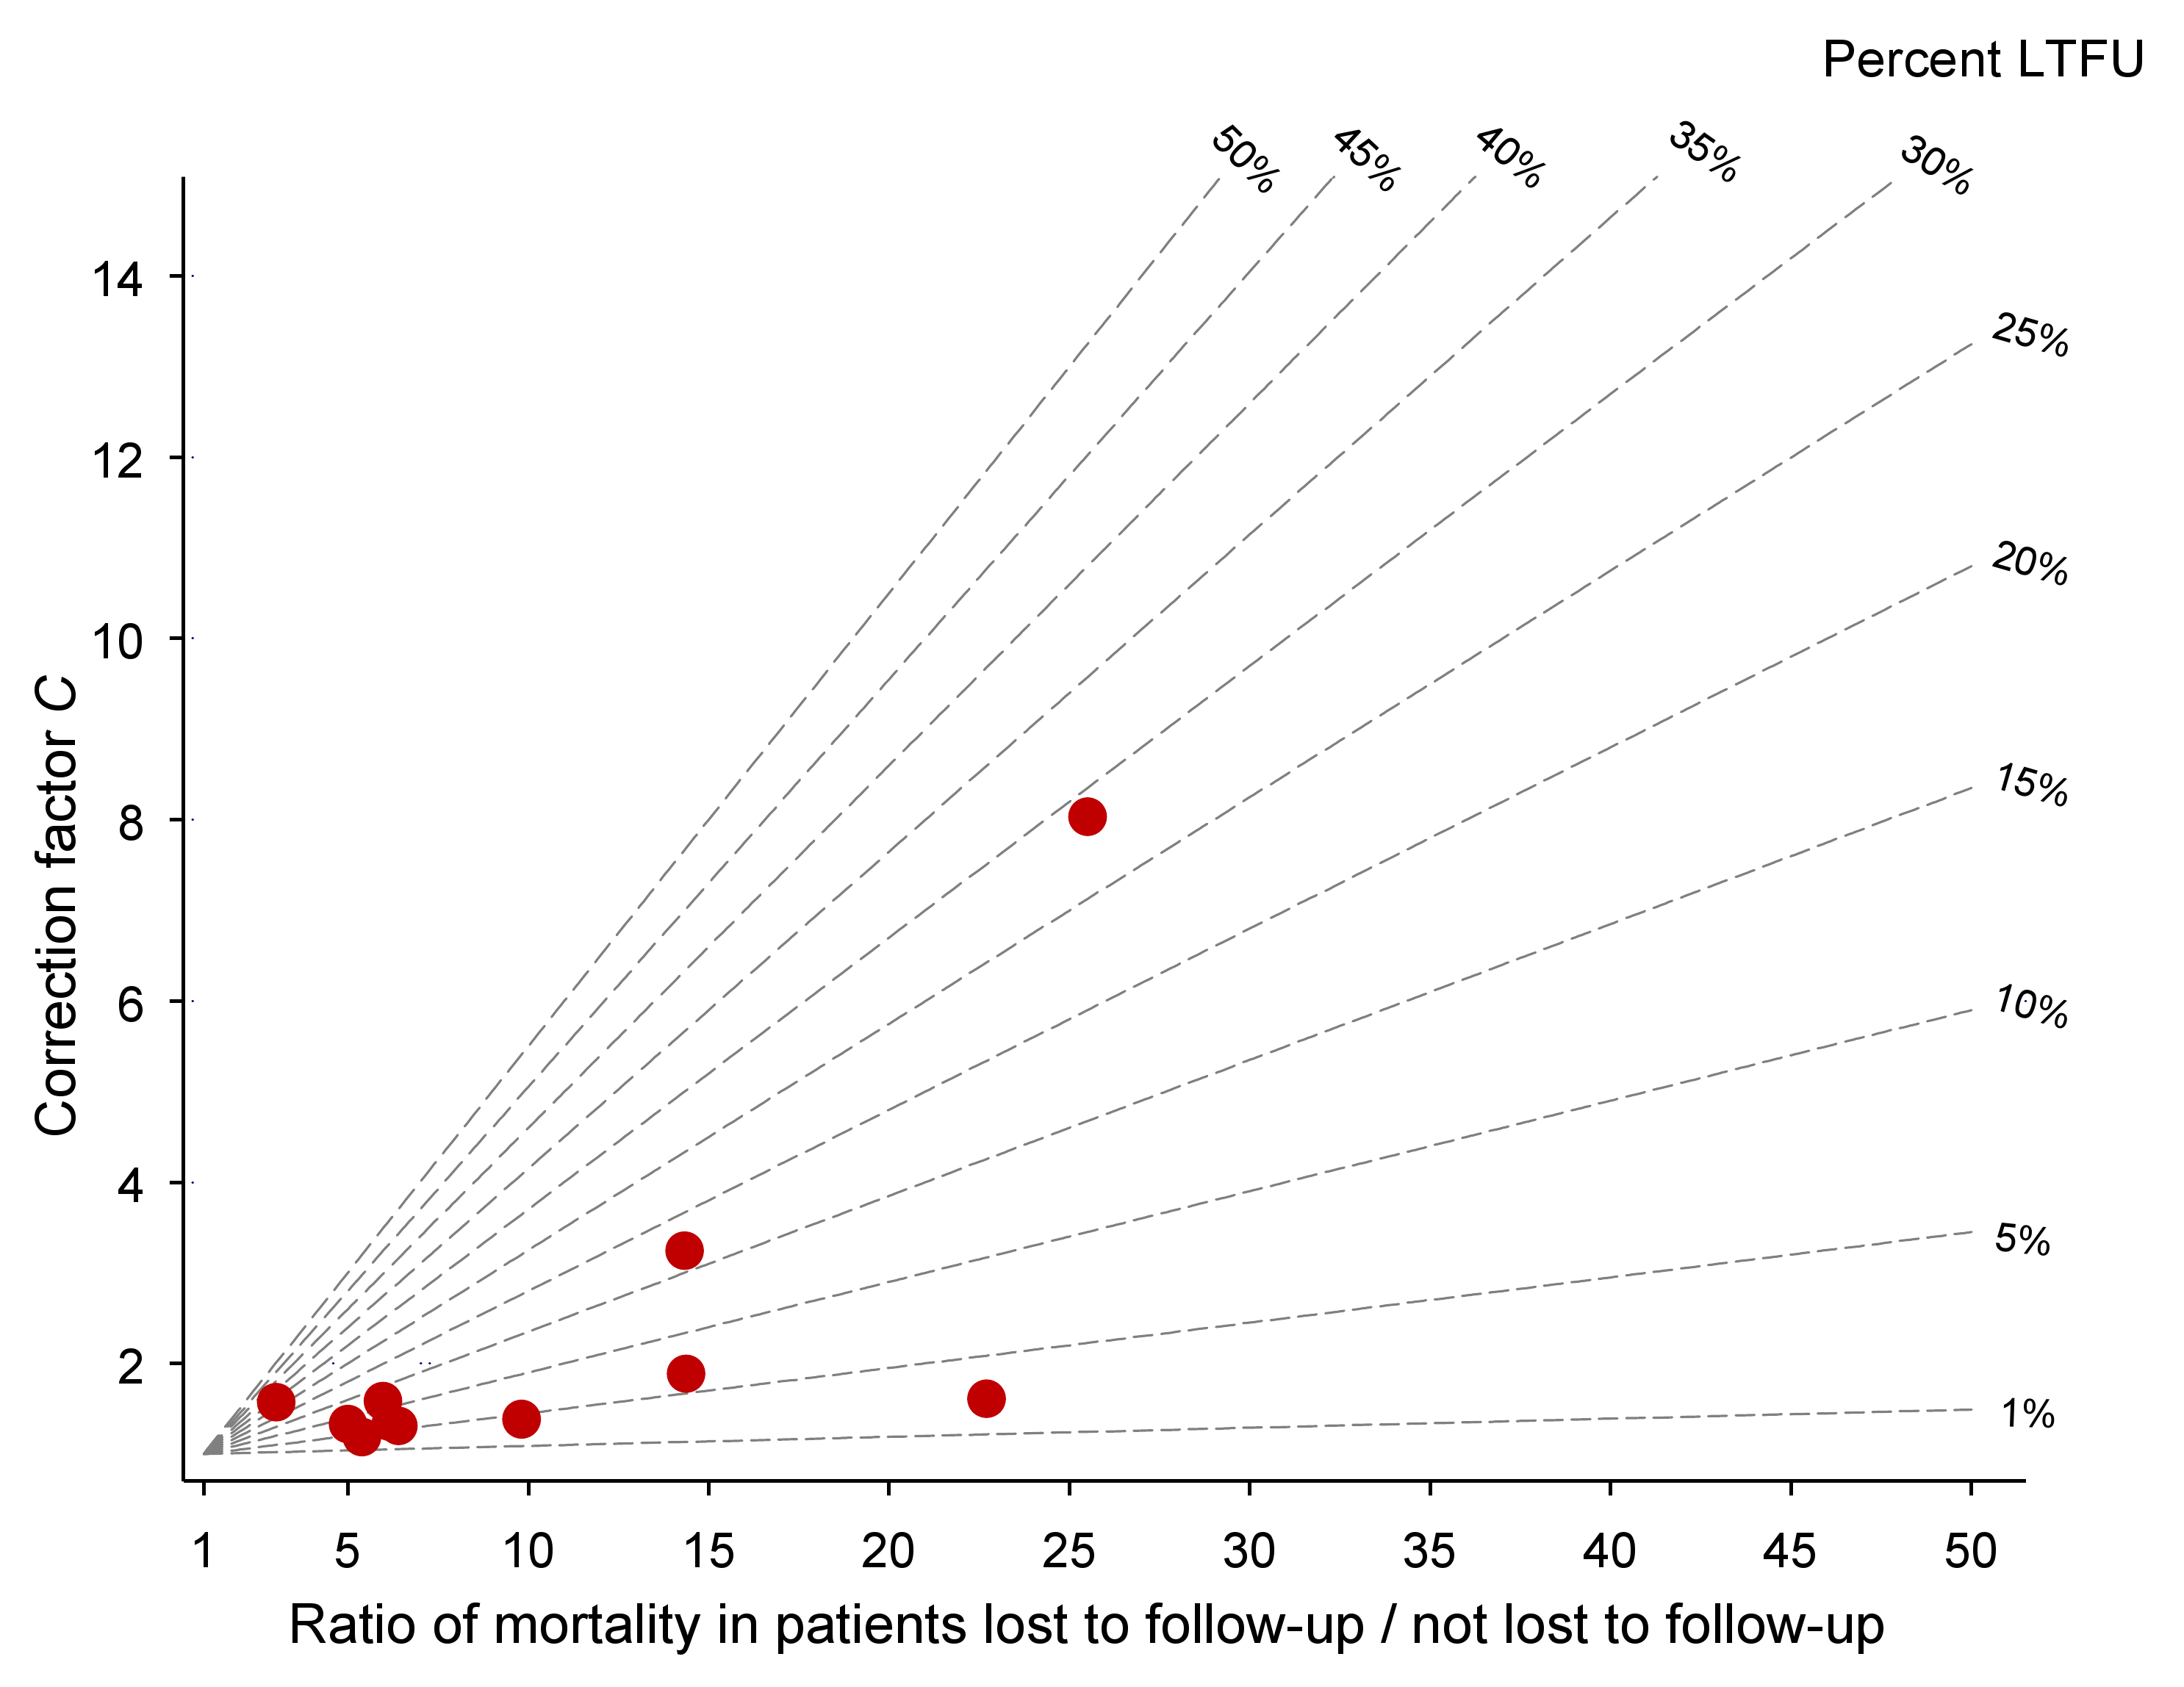 Nomogram with data from 11 antiretroviral treatment programmes in sub-Saharan Africa.